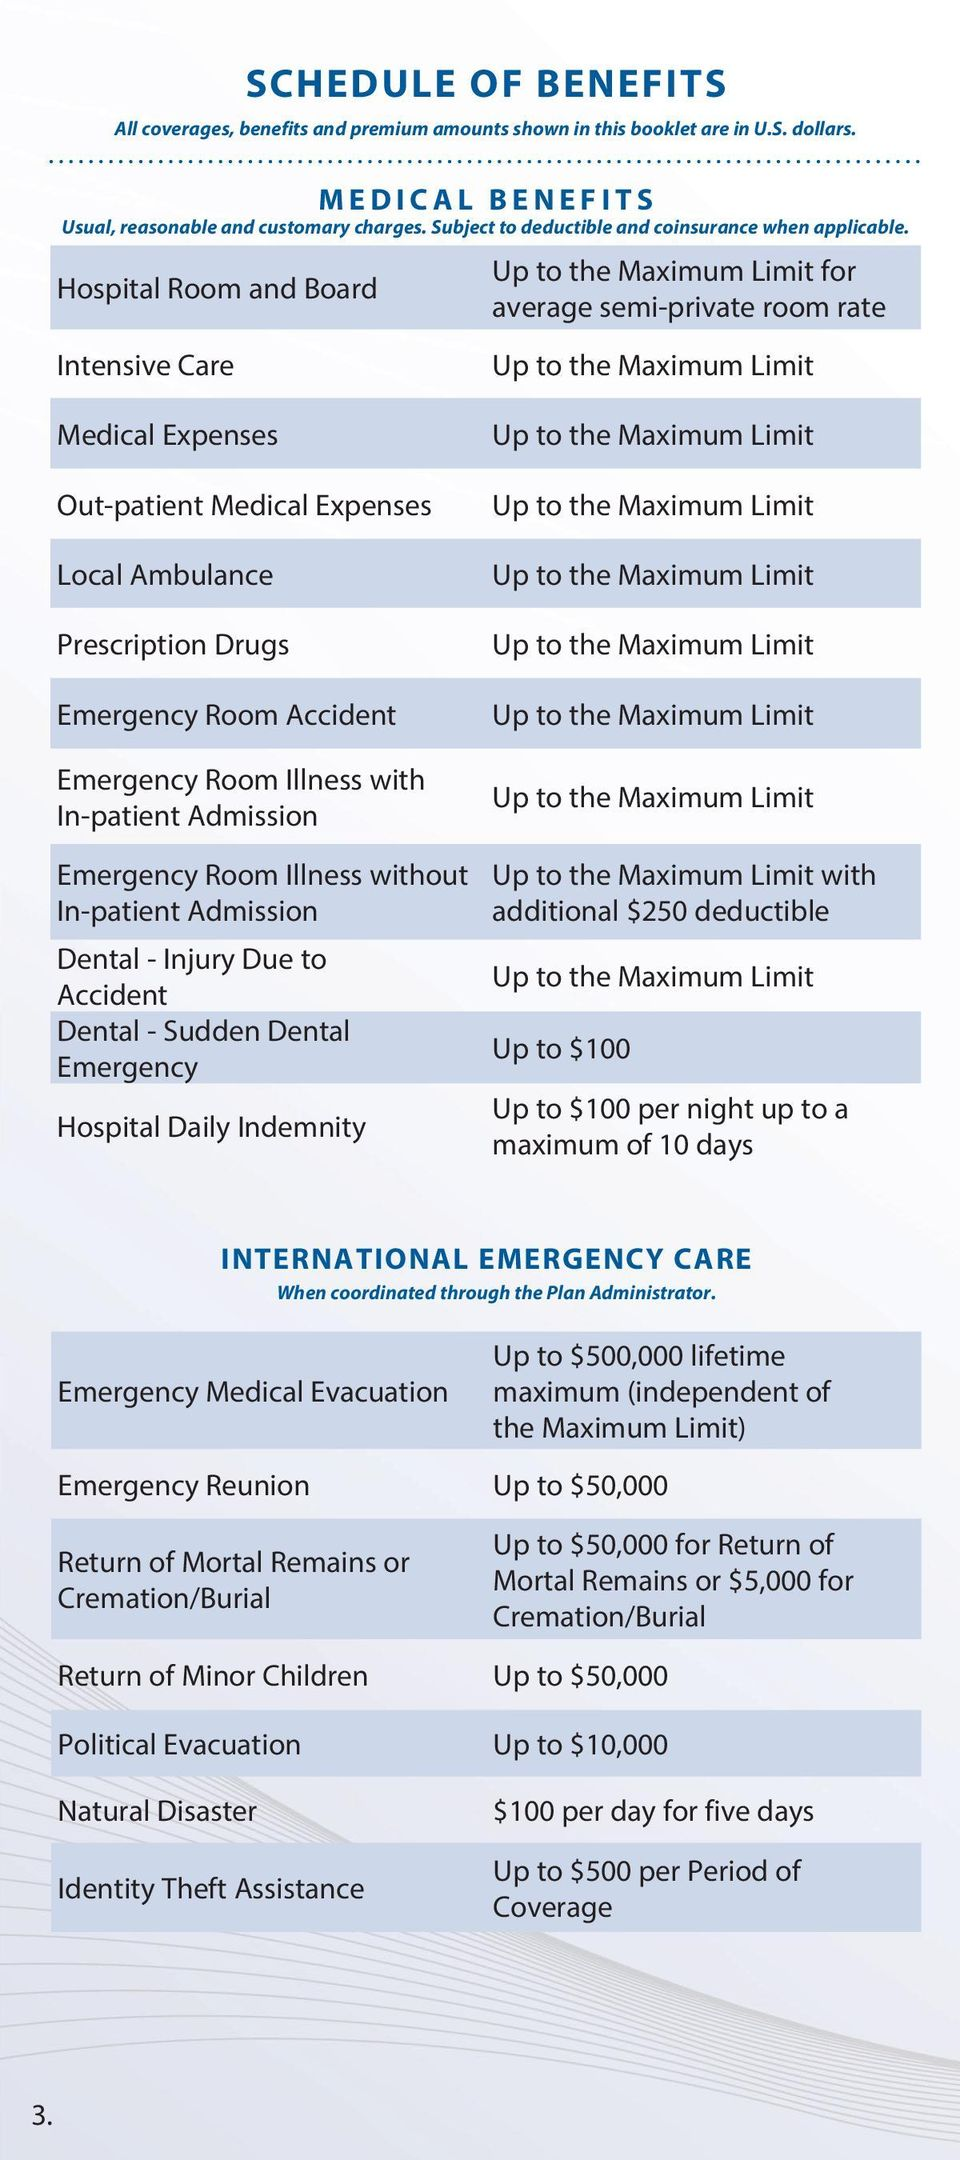 Hospital Room and Board Intensive Care Up to the Maximum Limit for average semi-private room rate Up to the Maximum Limit Medical Expenses Out-patient Medical Expenses Local Ambulance Prescription